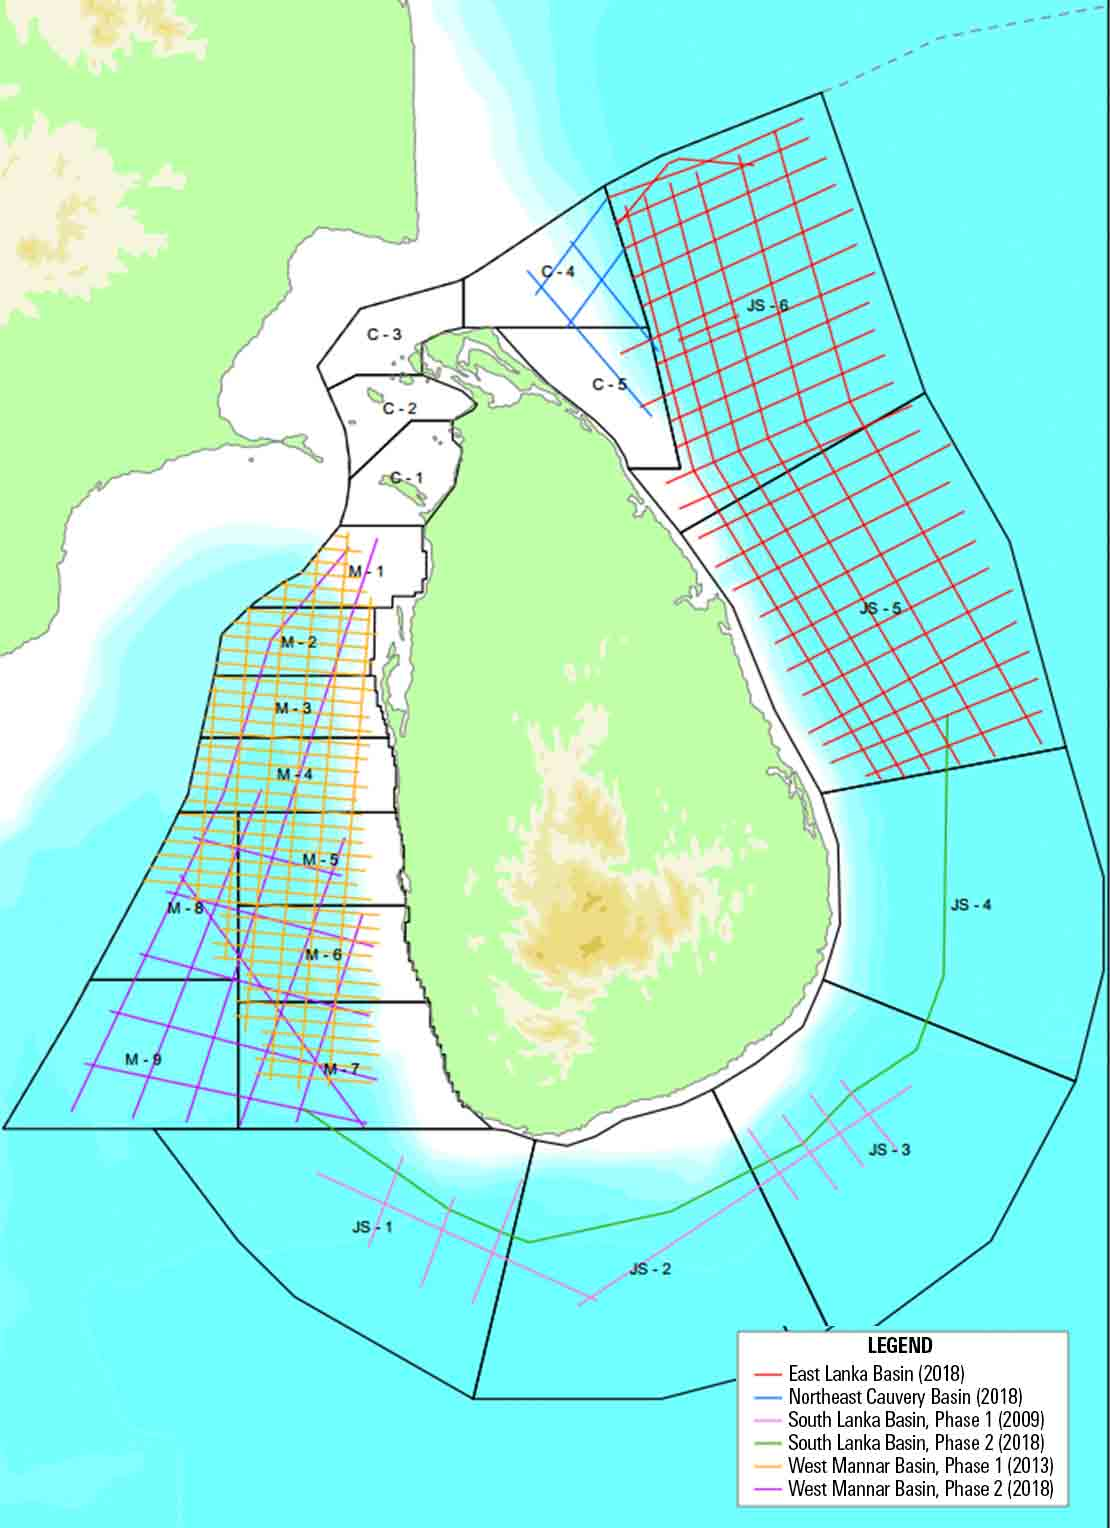 Image showing licensing round blocks and available broadband 2D seismic surveys of offshore Sri Lanka.